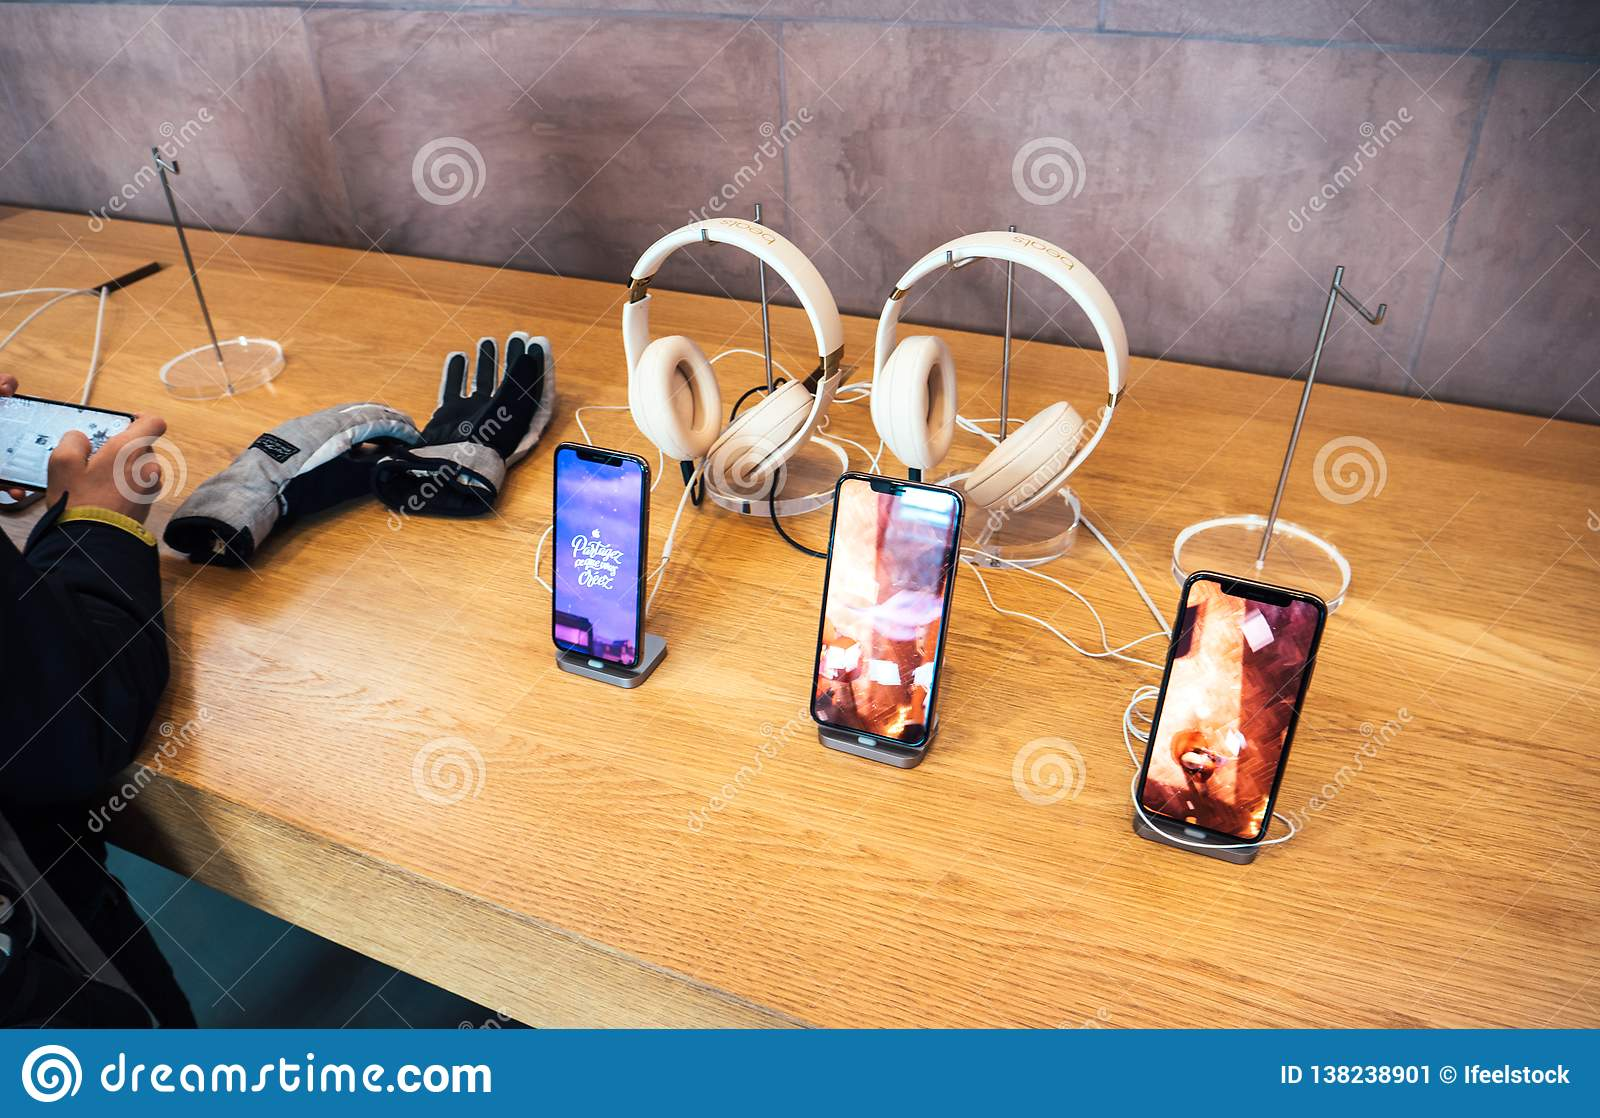 buy online df9c7 9a6bf Apple Computers IPhone XS Testing In Apple Store Headphones Beats By ...